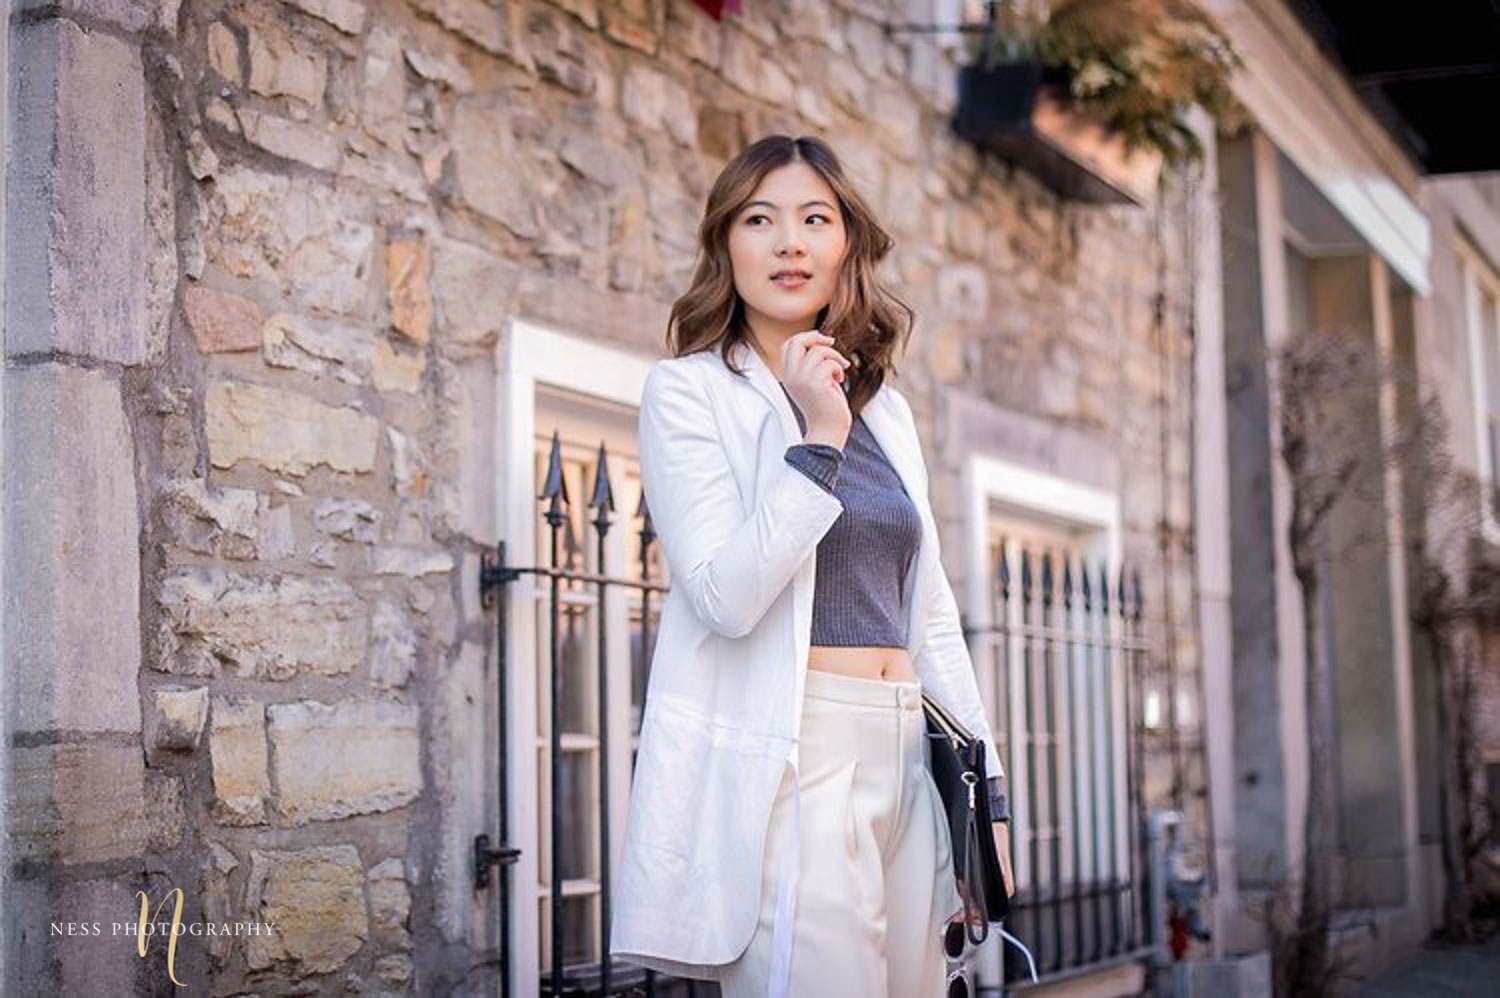 portrait in montreal vieux port of heydahye wearing white and holding sunglasses